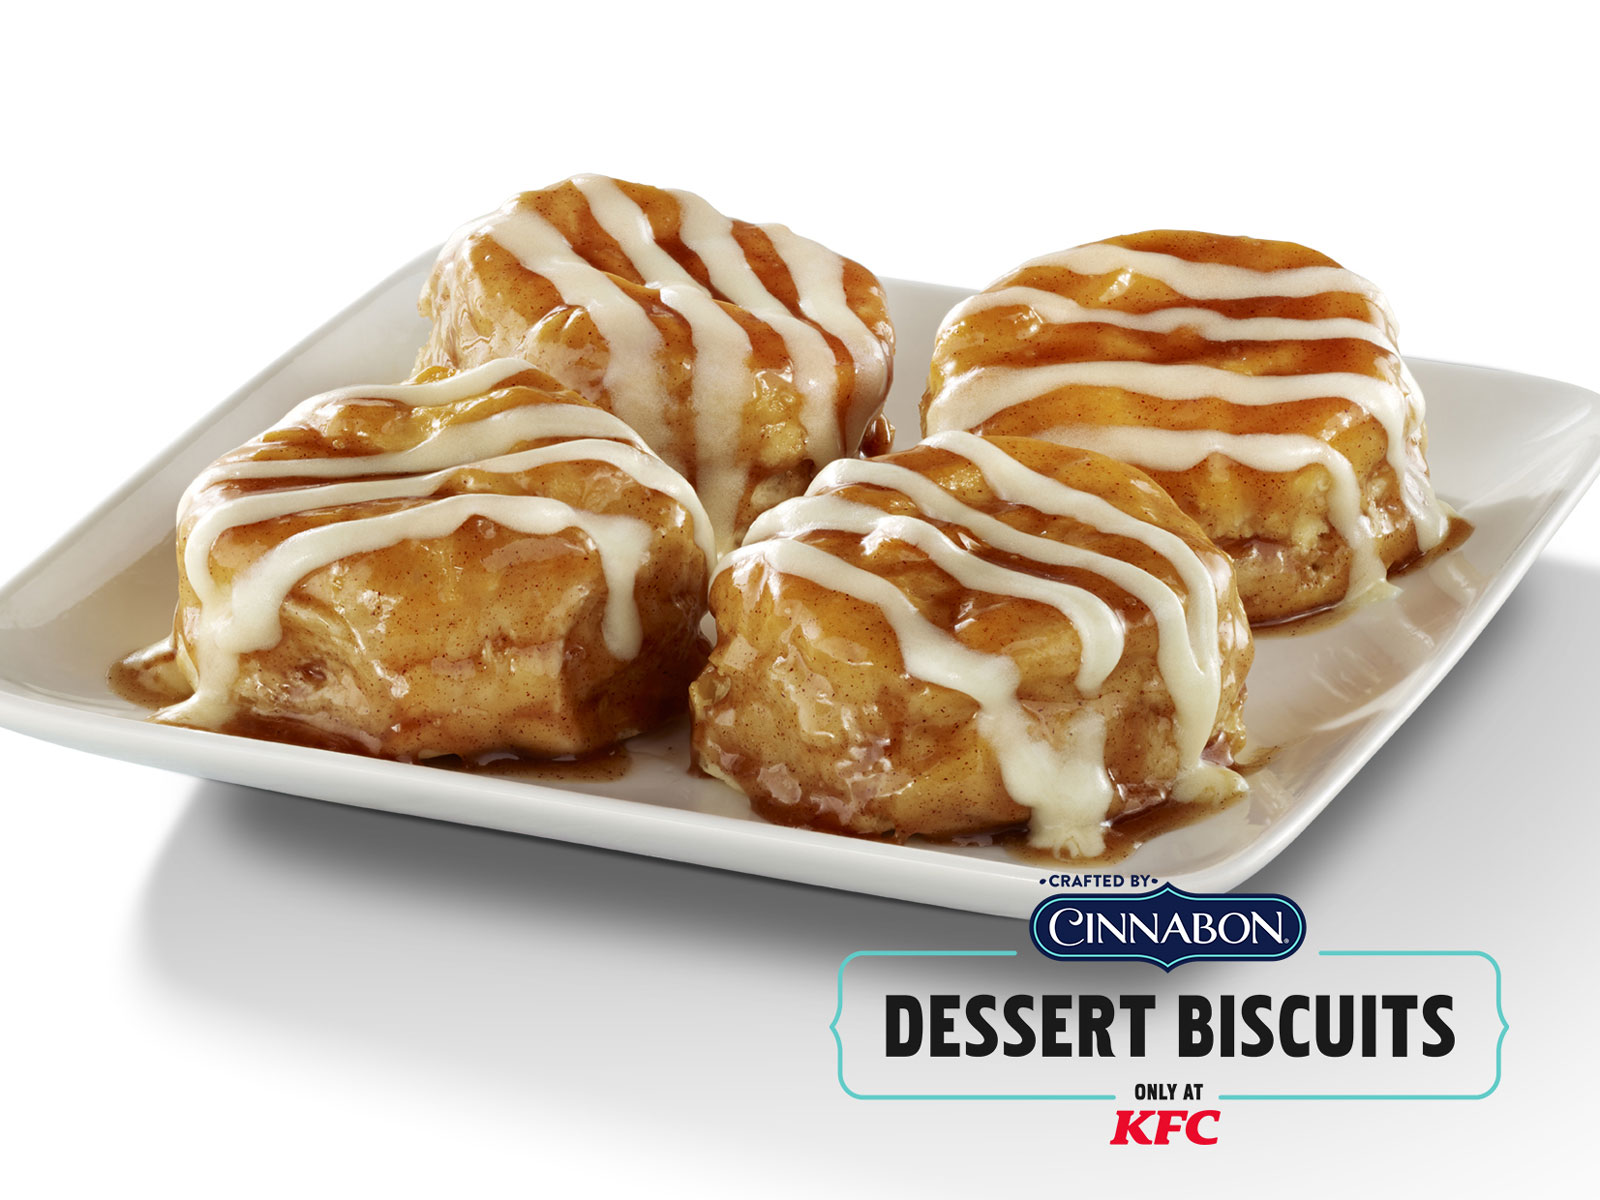 kfc-cinnabon-biscuits-FT-BLOG0419.jpg